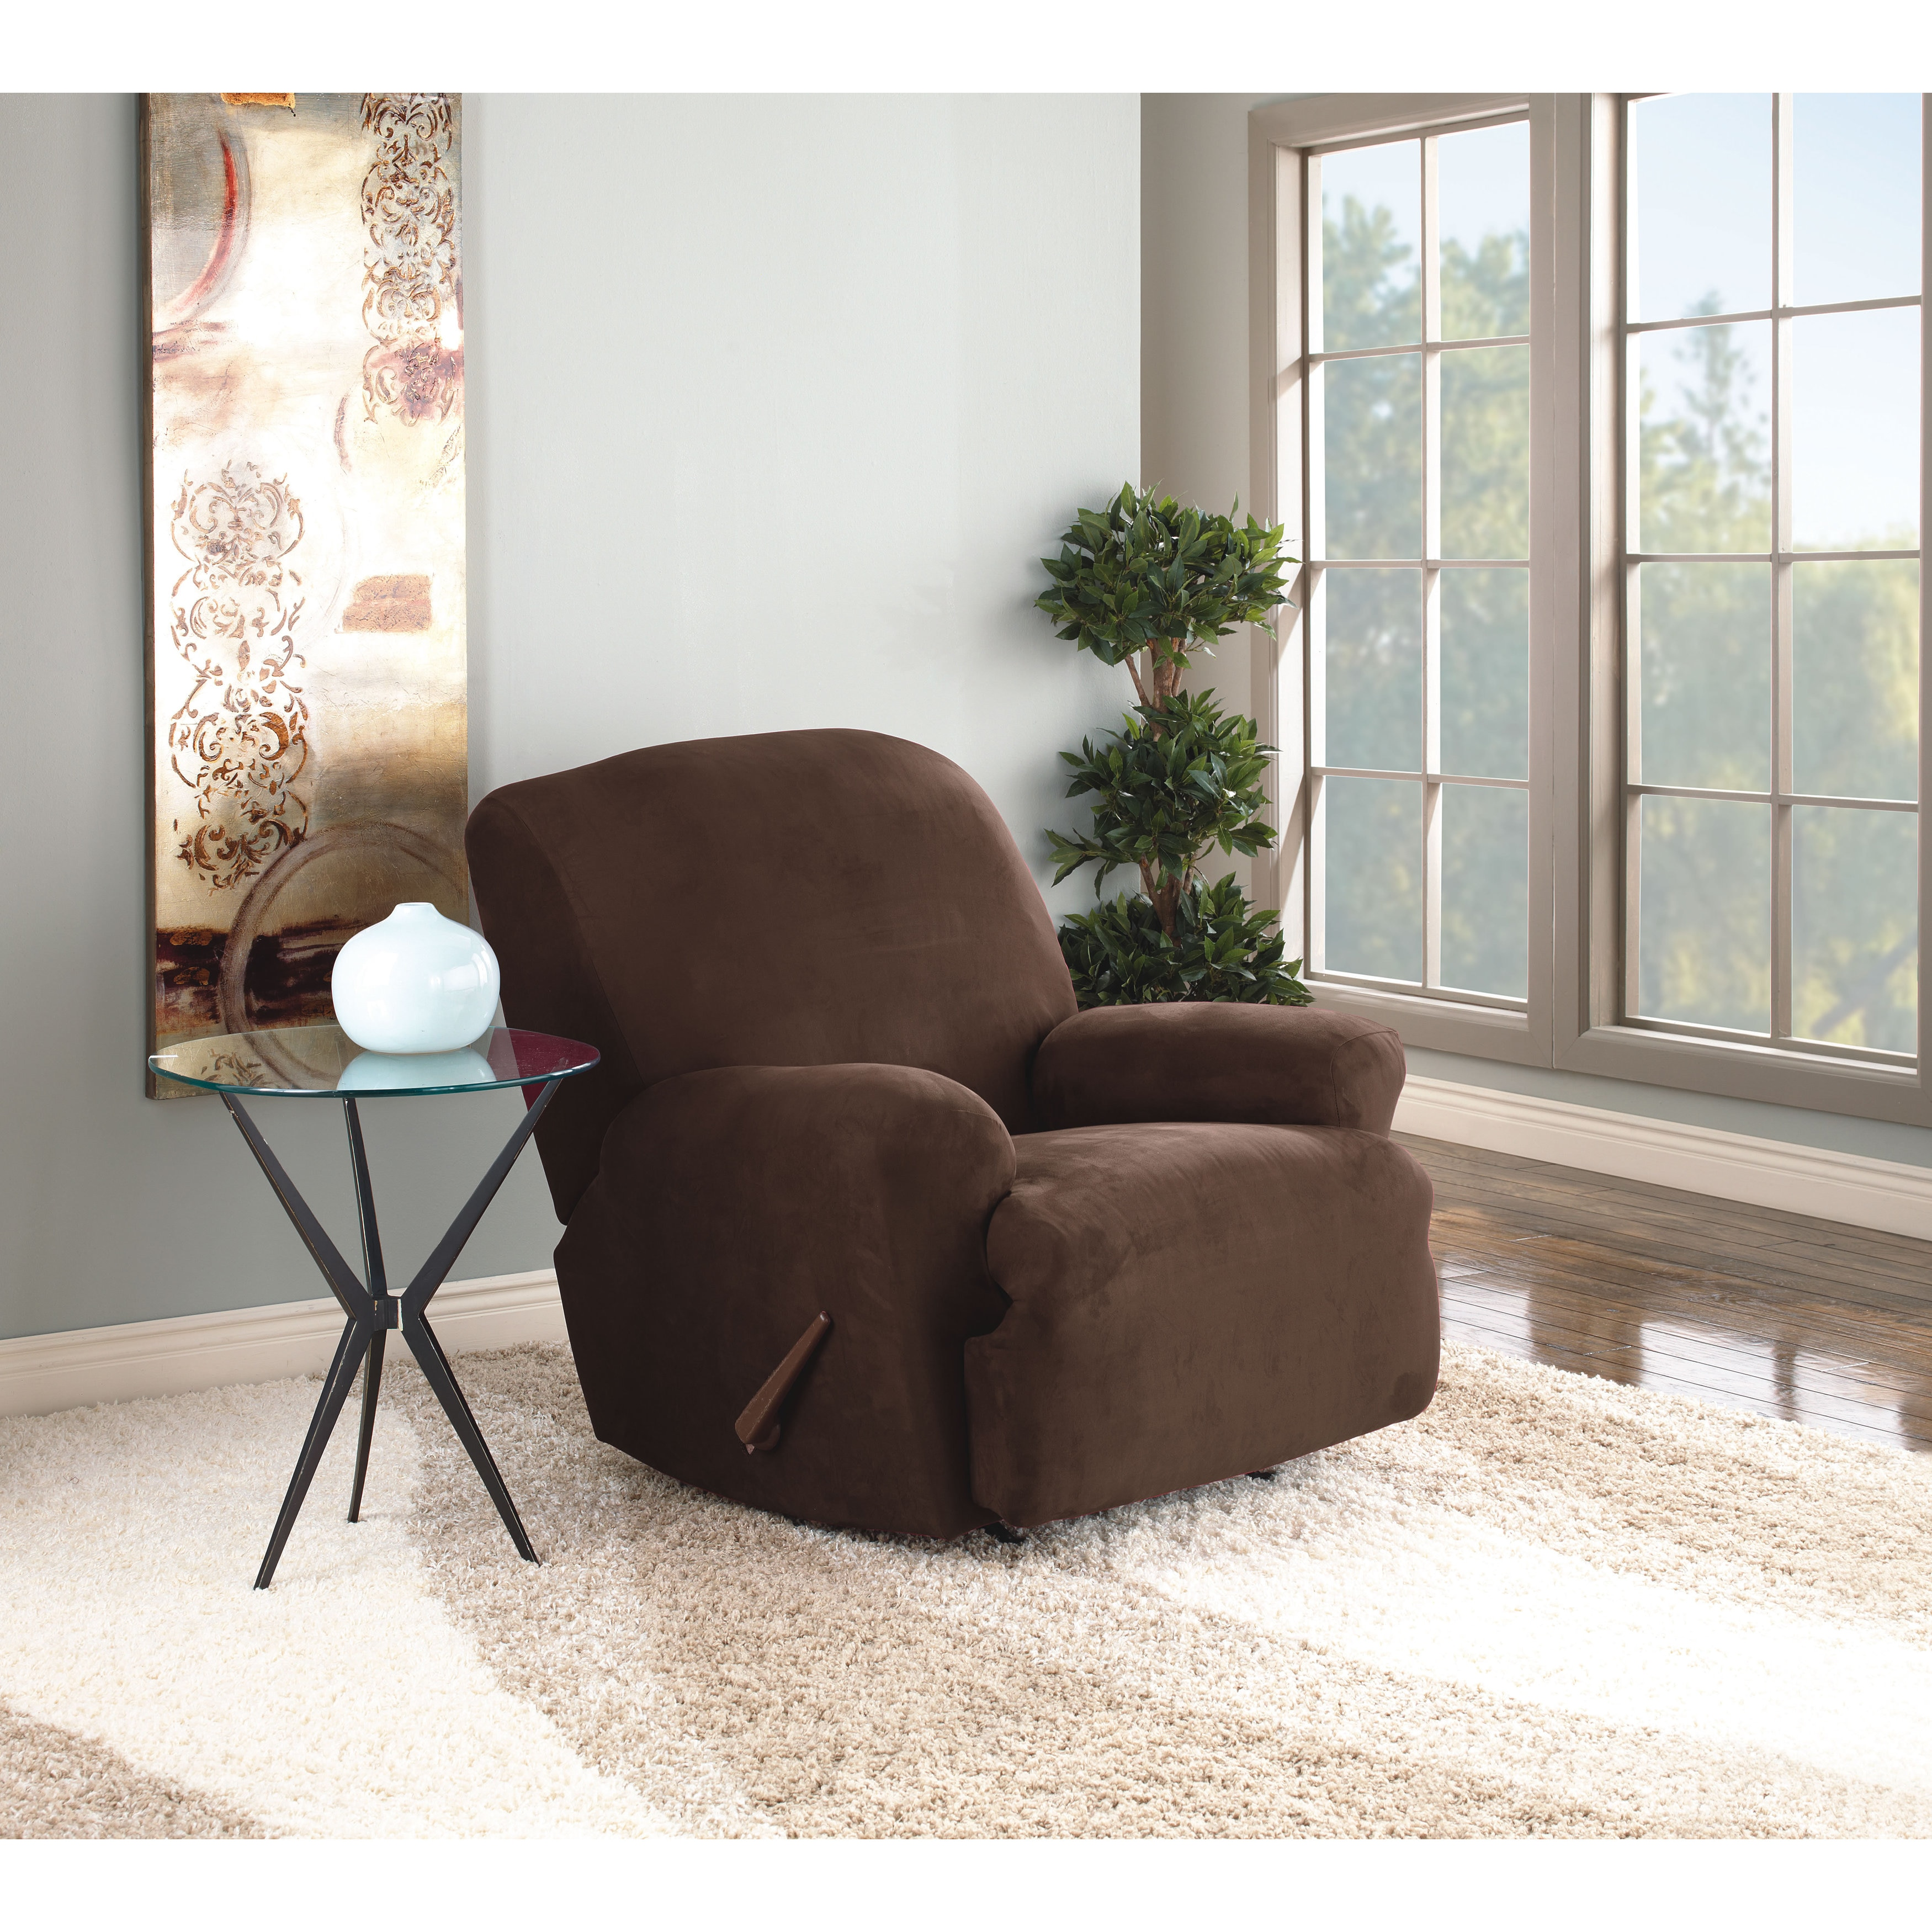 sure at slipcover slipcovers options recliner home prices fit nextag stretch taupe compare garden shopping striped pinstripe products